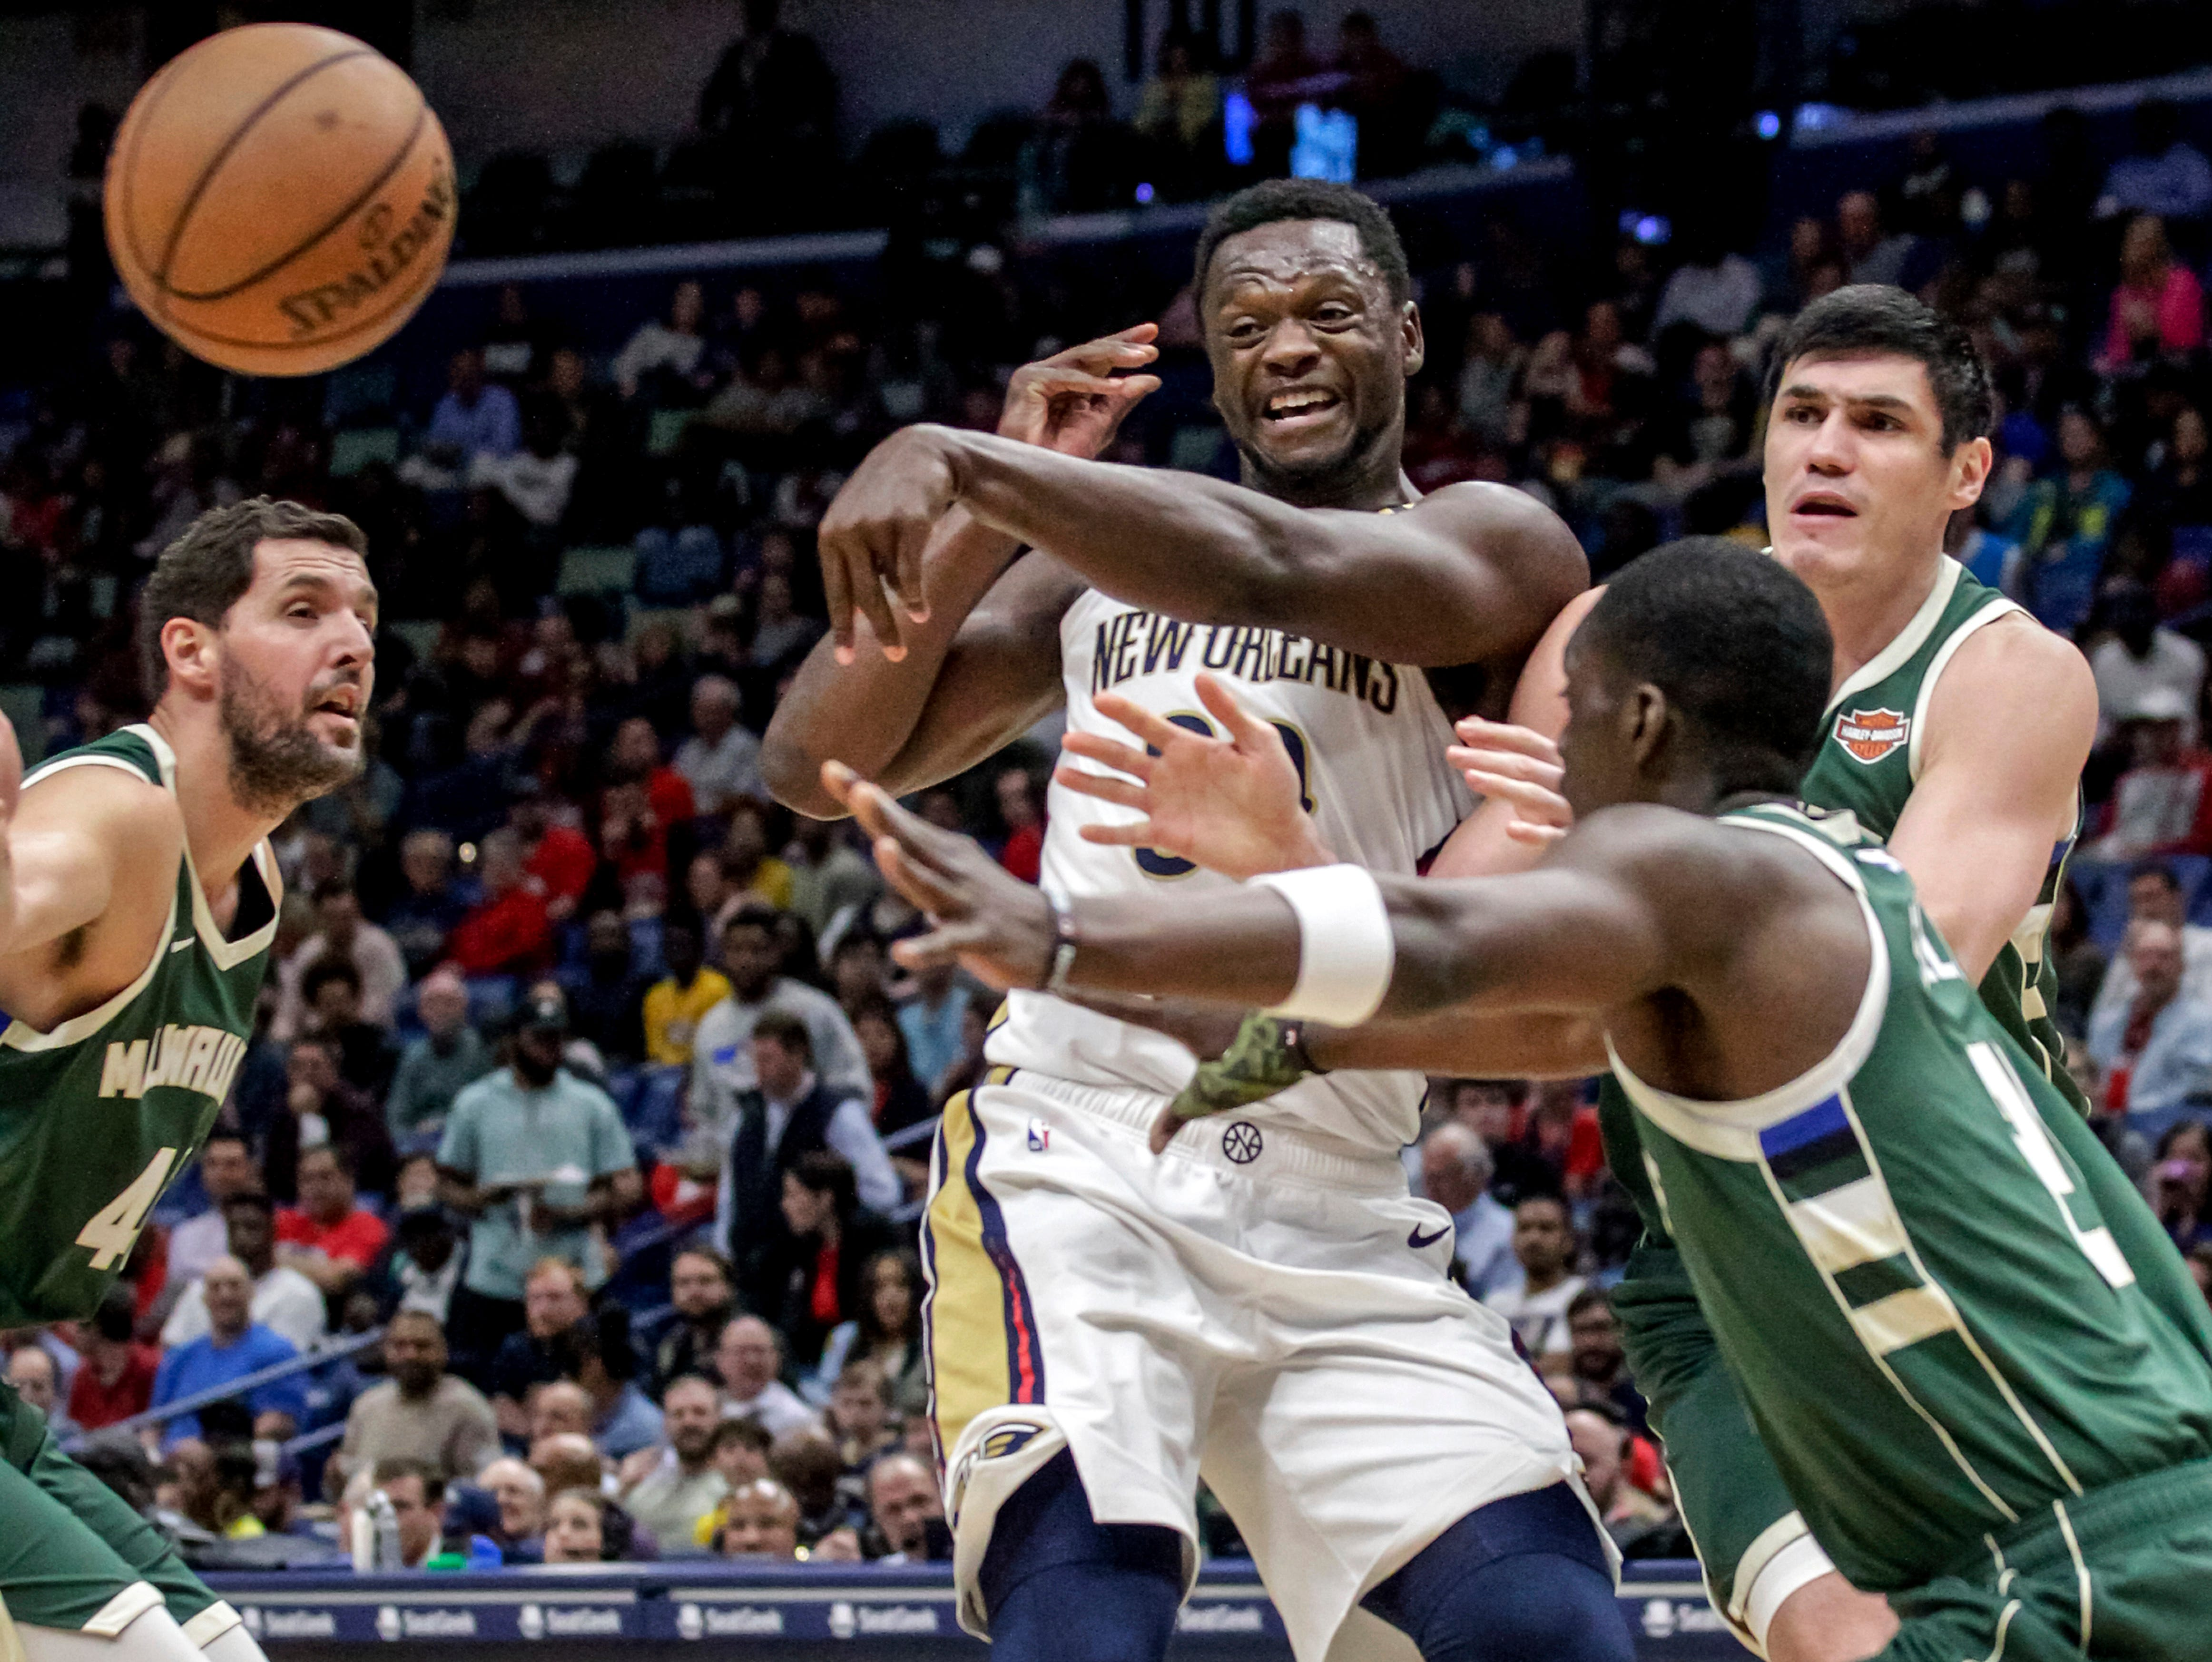 Pelicans center Julius Randle is forced to give up the rock as he's surrounded by Nikola Mirotic (left), Tony Snell (center) and Ersan Ilyasova during the first half Tuesday.